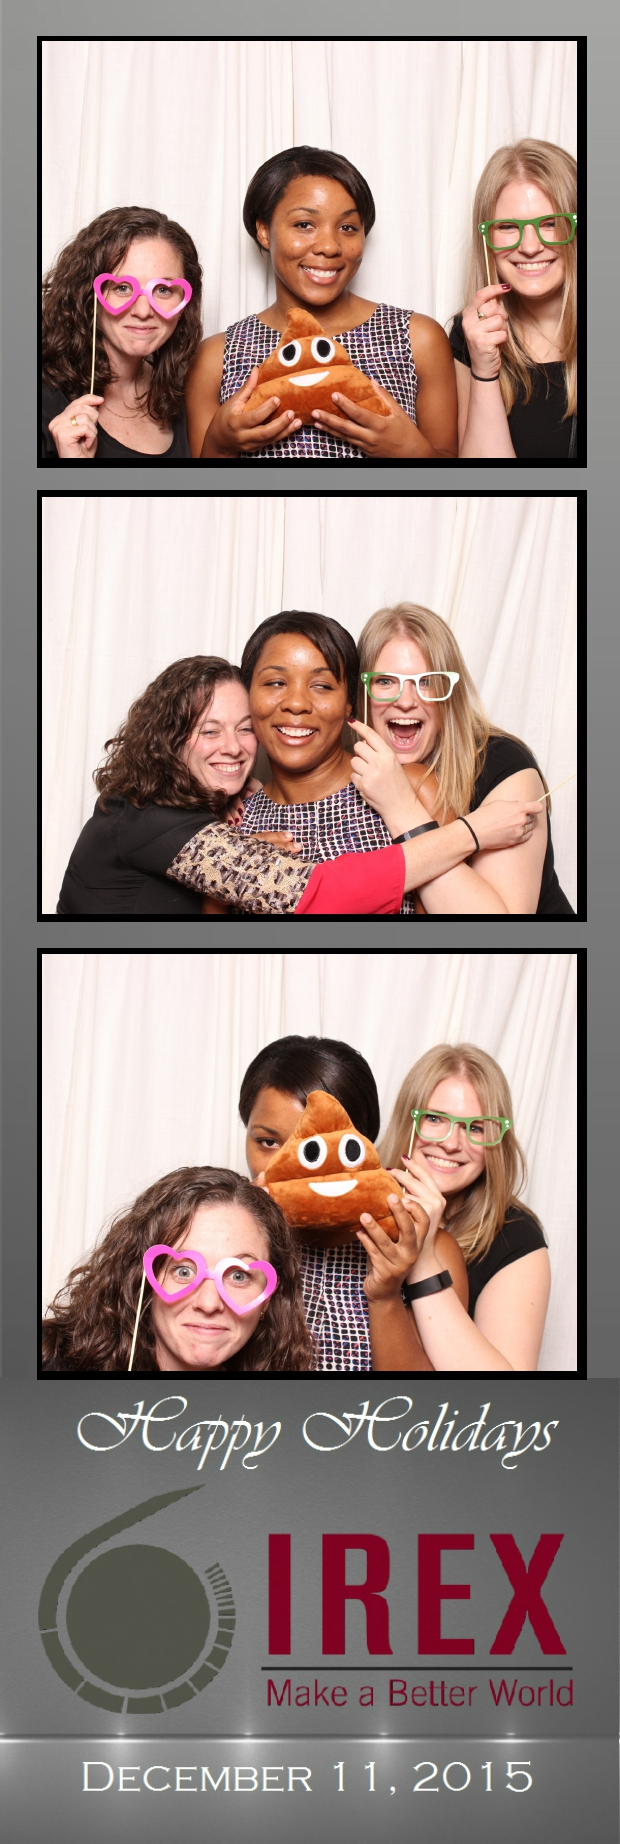 Guest House Events Photo Booth Strips IREX (29).jpg